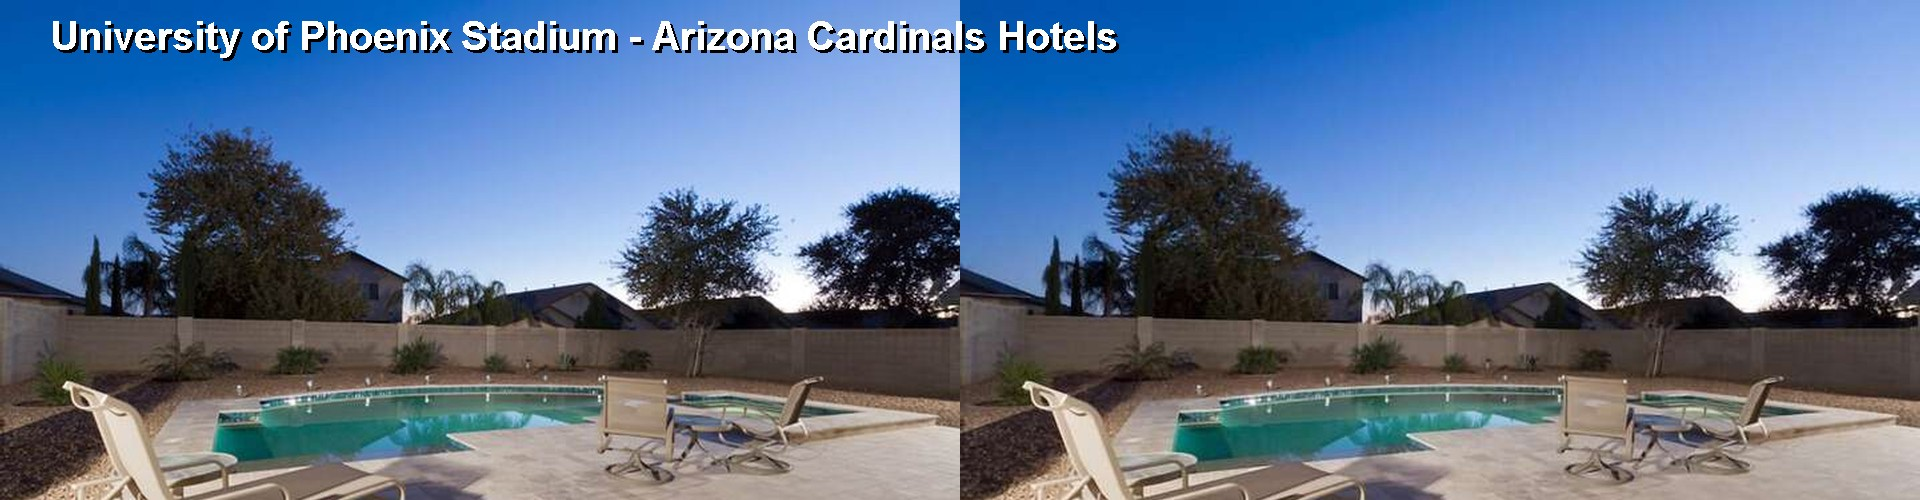 Hotels Near University of Phoenix Stadium Arizona Cardinals in